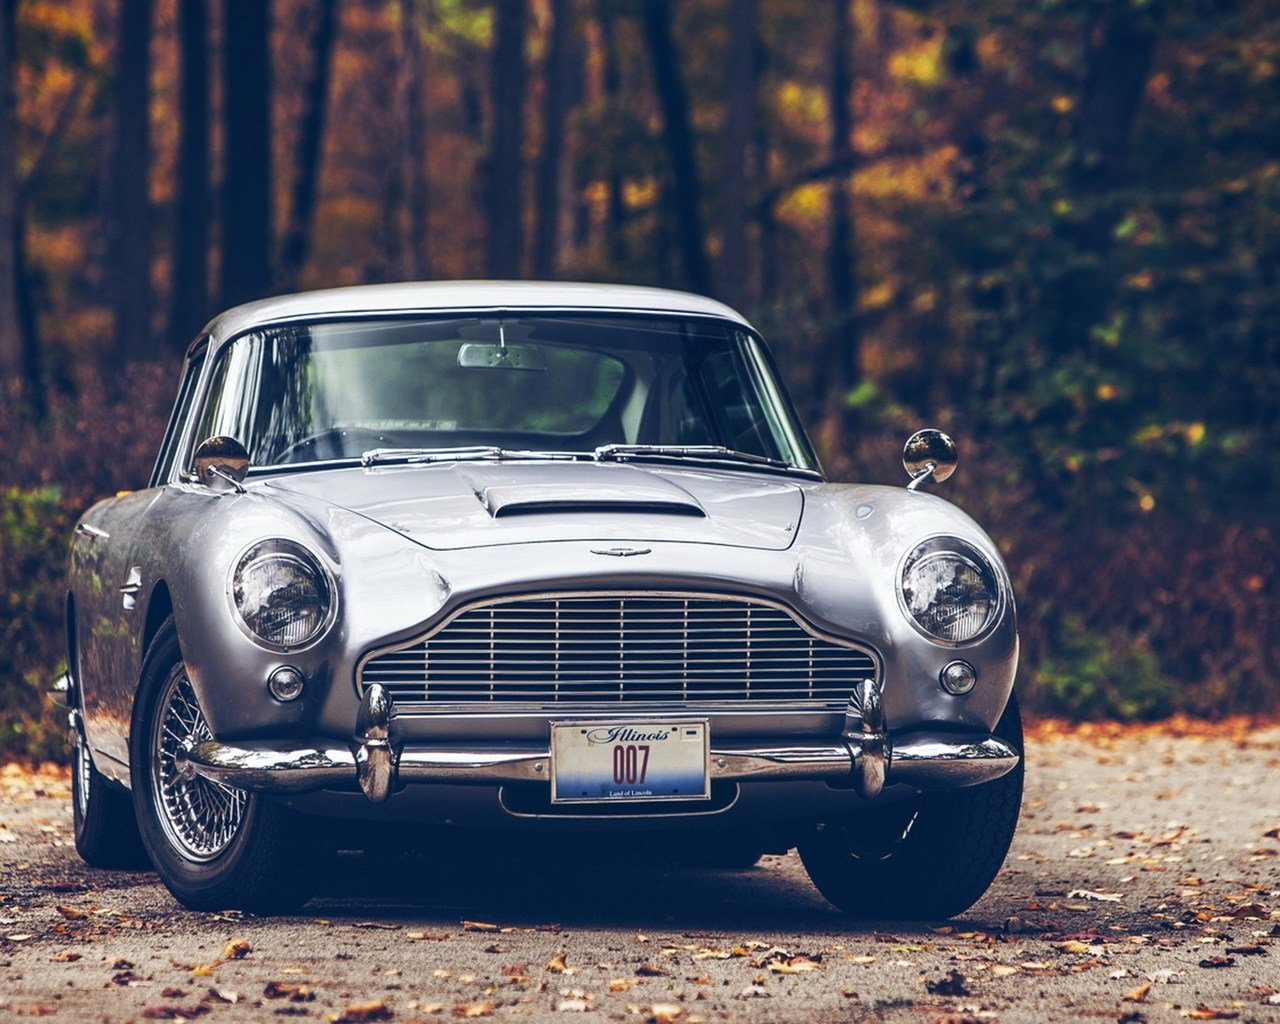 Latest 1280X1024 Aston Martin Db5 1280X1024 Resolution Hd 4K Free Download